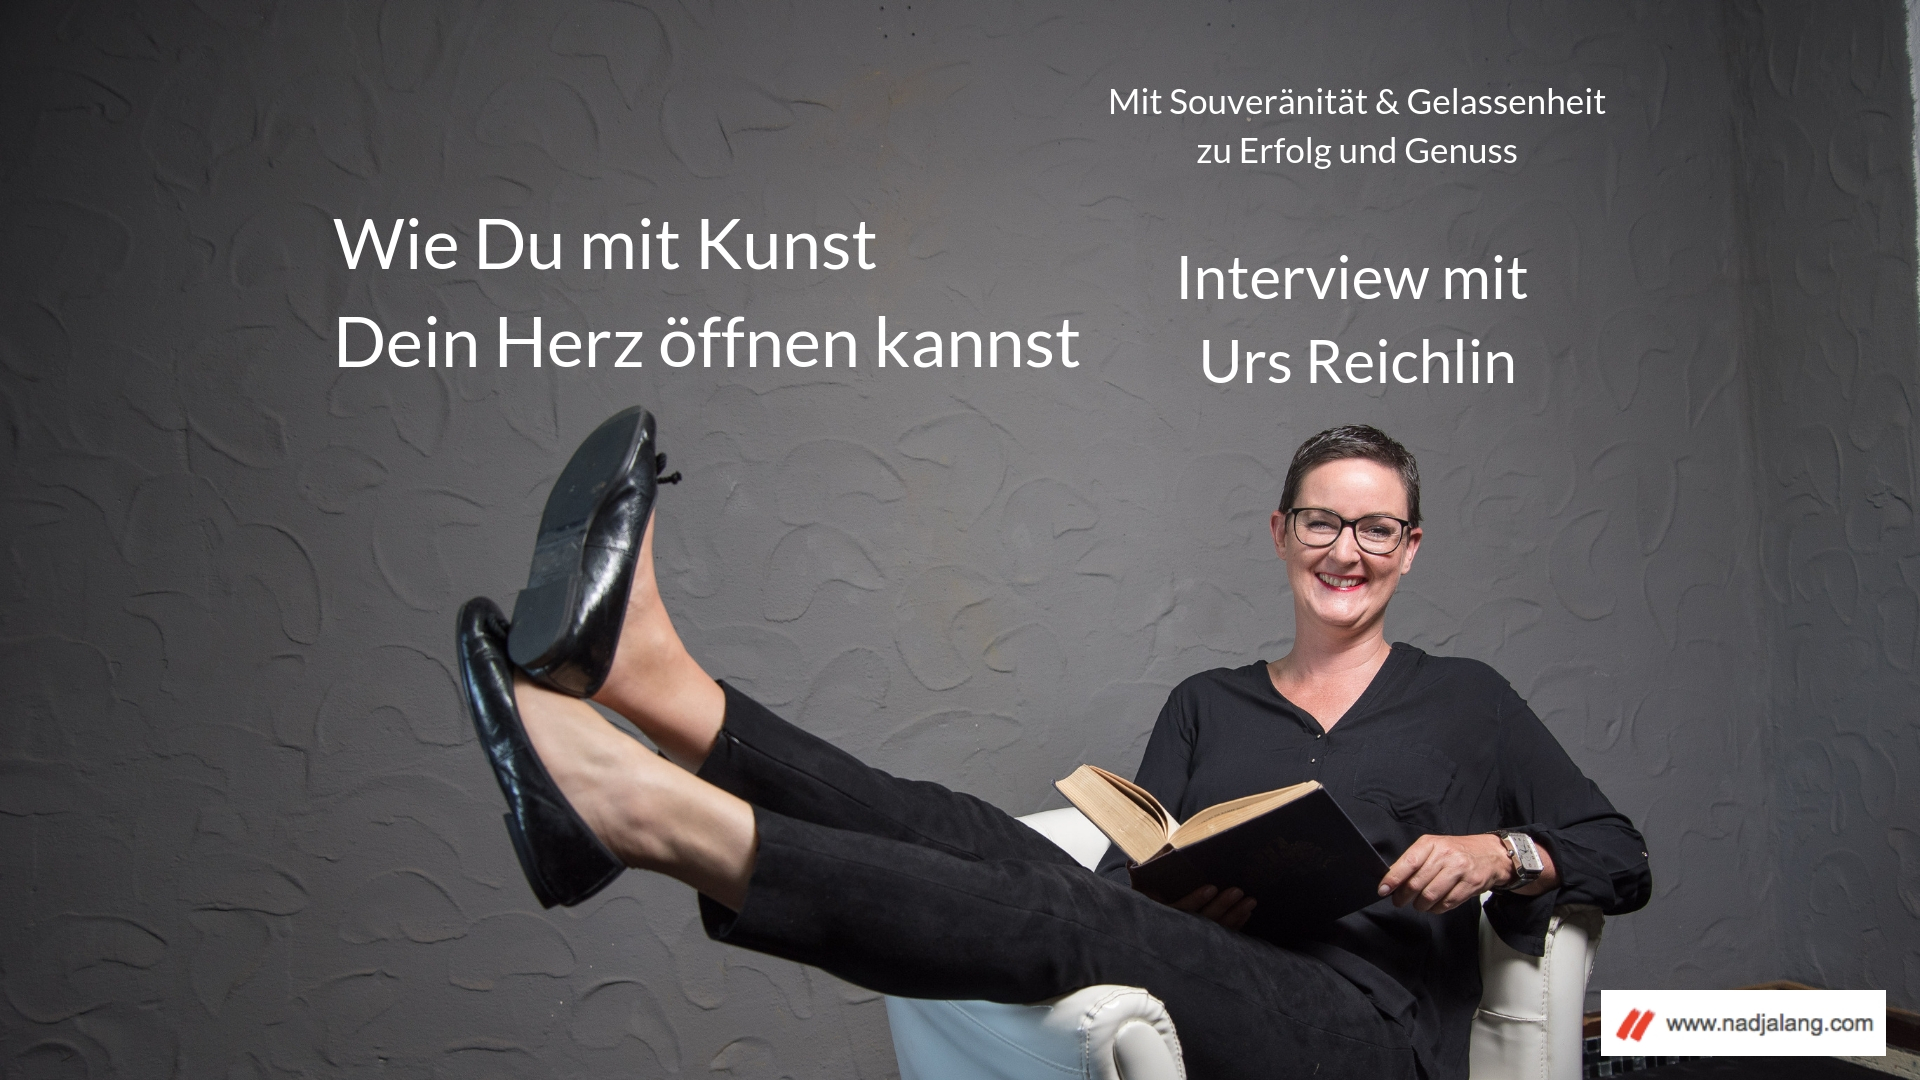 029 Interview Urs Reichlin.jpg